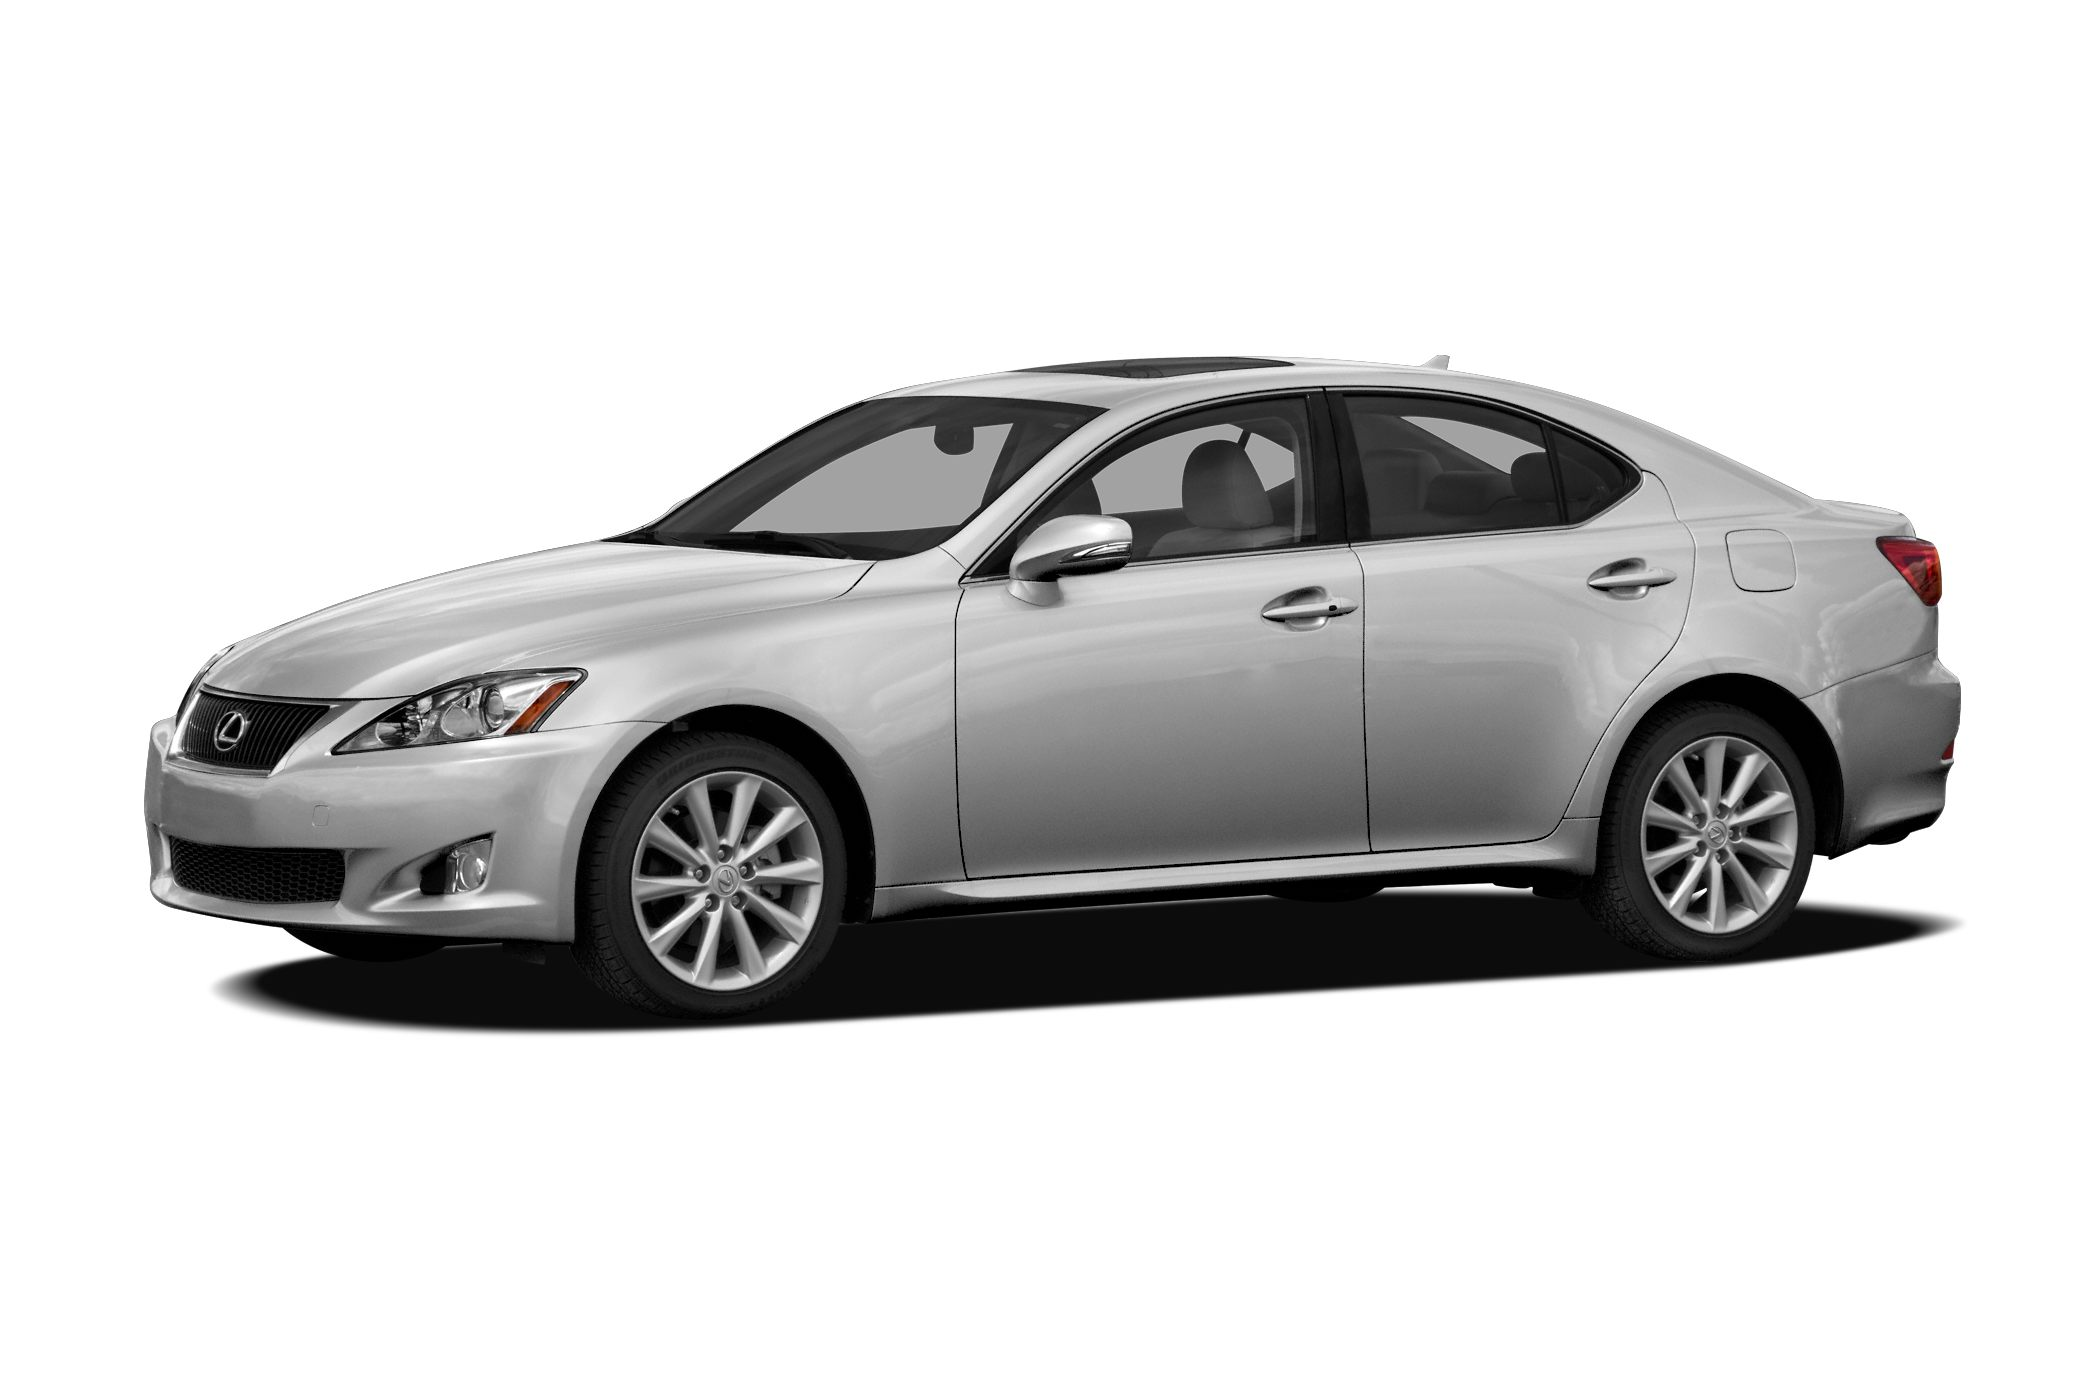 2009 Lexus IS 250 Base Includes a CARFAX buyback guarantee New Inventory Look Look Look